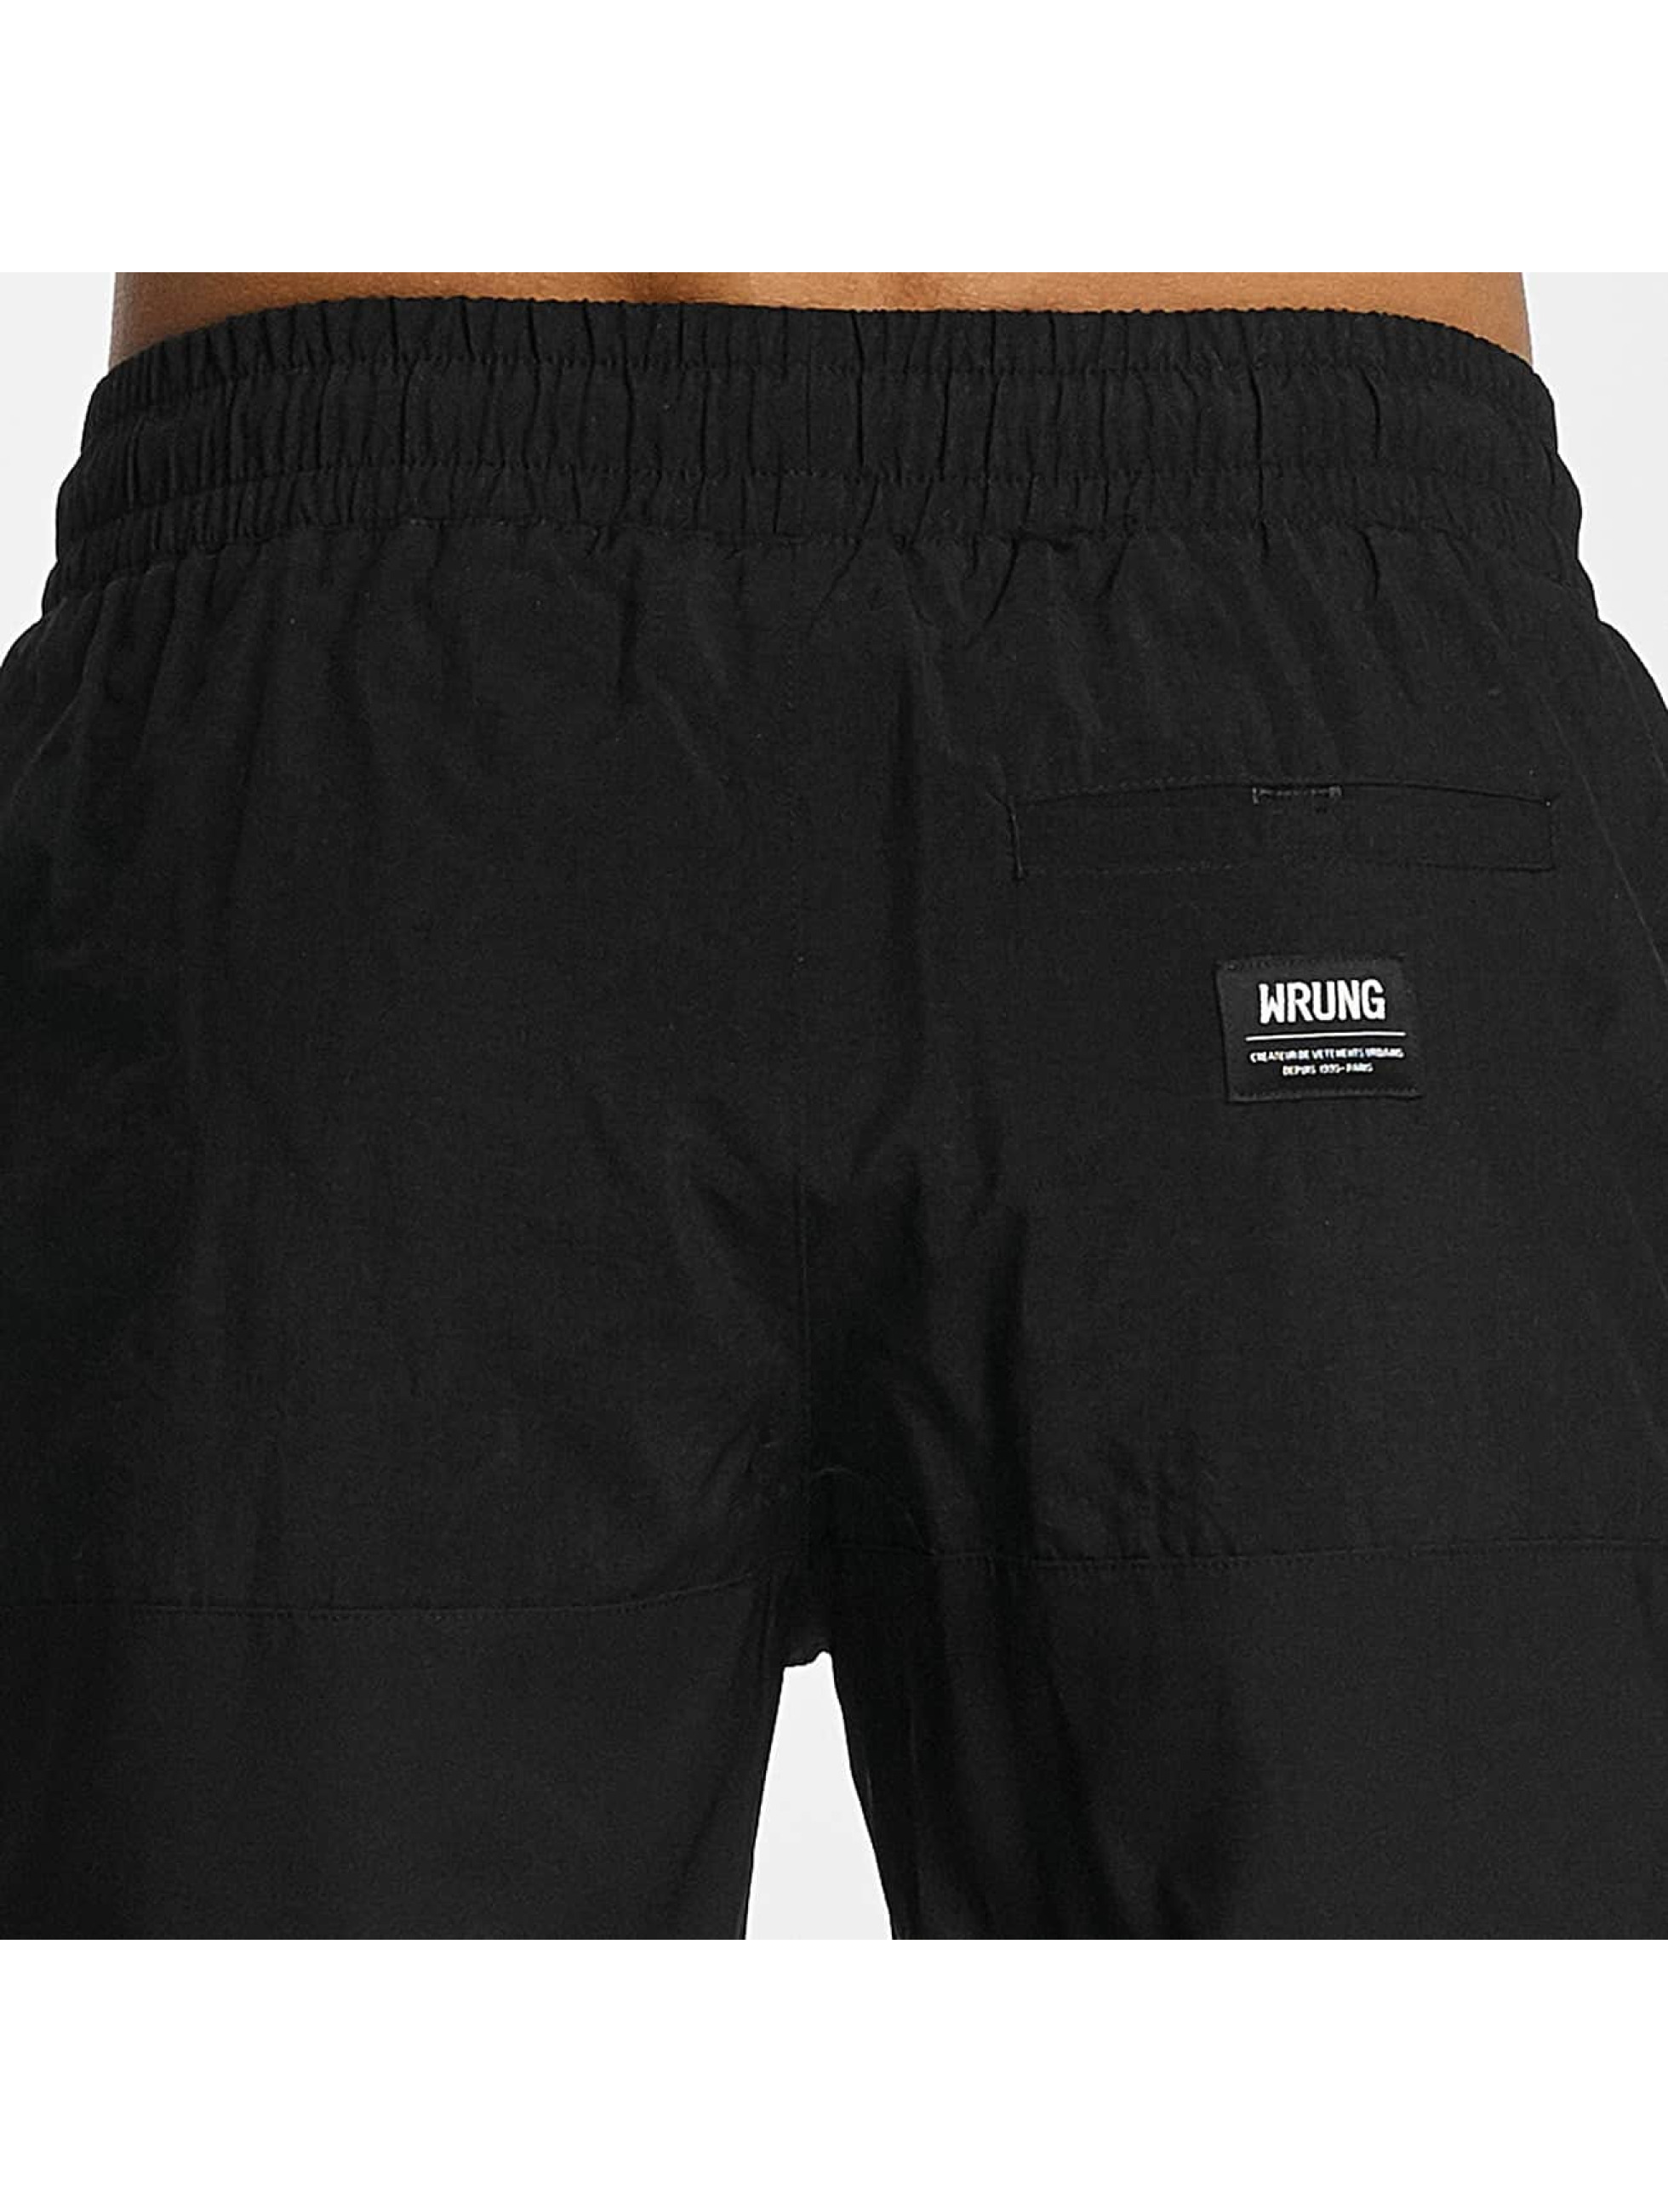 Wrung Division Short Alpha black